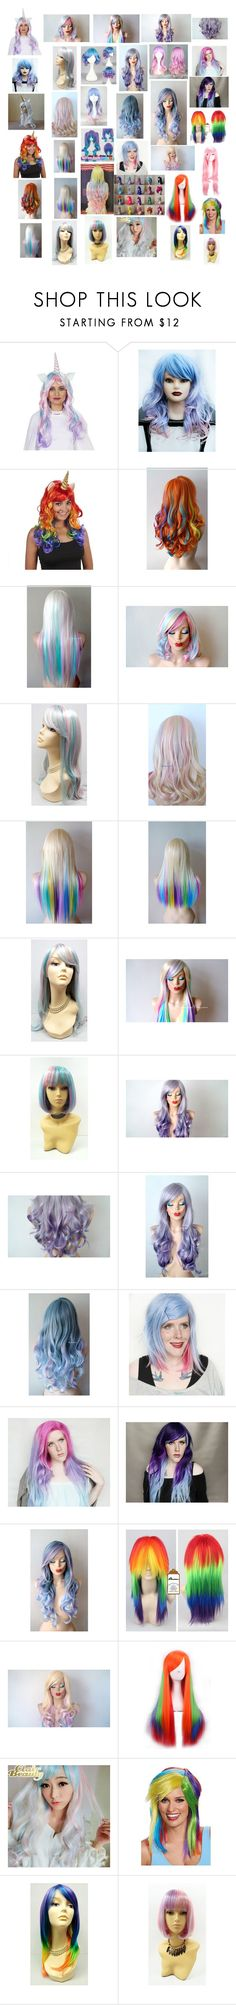 """""""Unicorn and Pastel Rainbow Wigs"""" by mikahelaine ❤ liked on Polyvore featuring beauty, Buy Seasons, Cotton Candy, Rockstar Wigs, My Little Pony and Clair Beauty"""